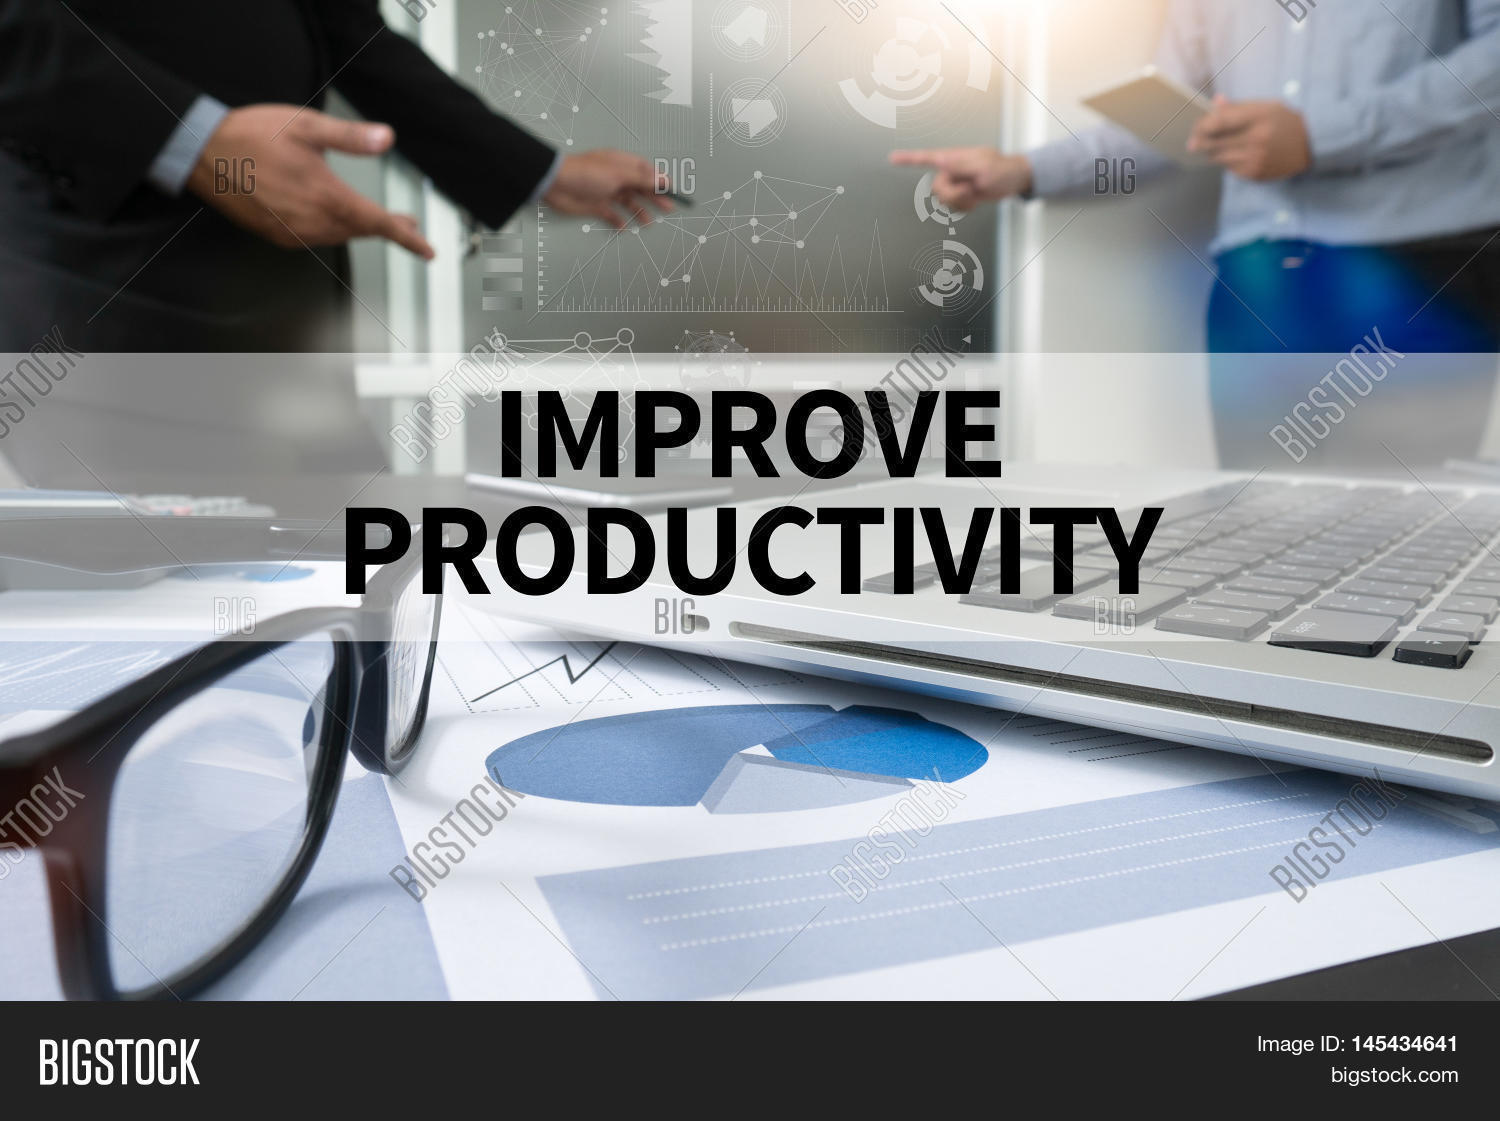 ipu2 mandatory improving productivity using it How to improve productivity for teams the productivity of work teams can make or break an organization there are methods that a supervisor can use to improve productivity obstaclesone of the duties of a supervisor is to remove obstacles that make it difficult for the employees to do the job.